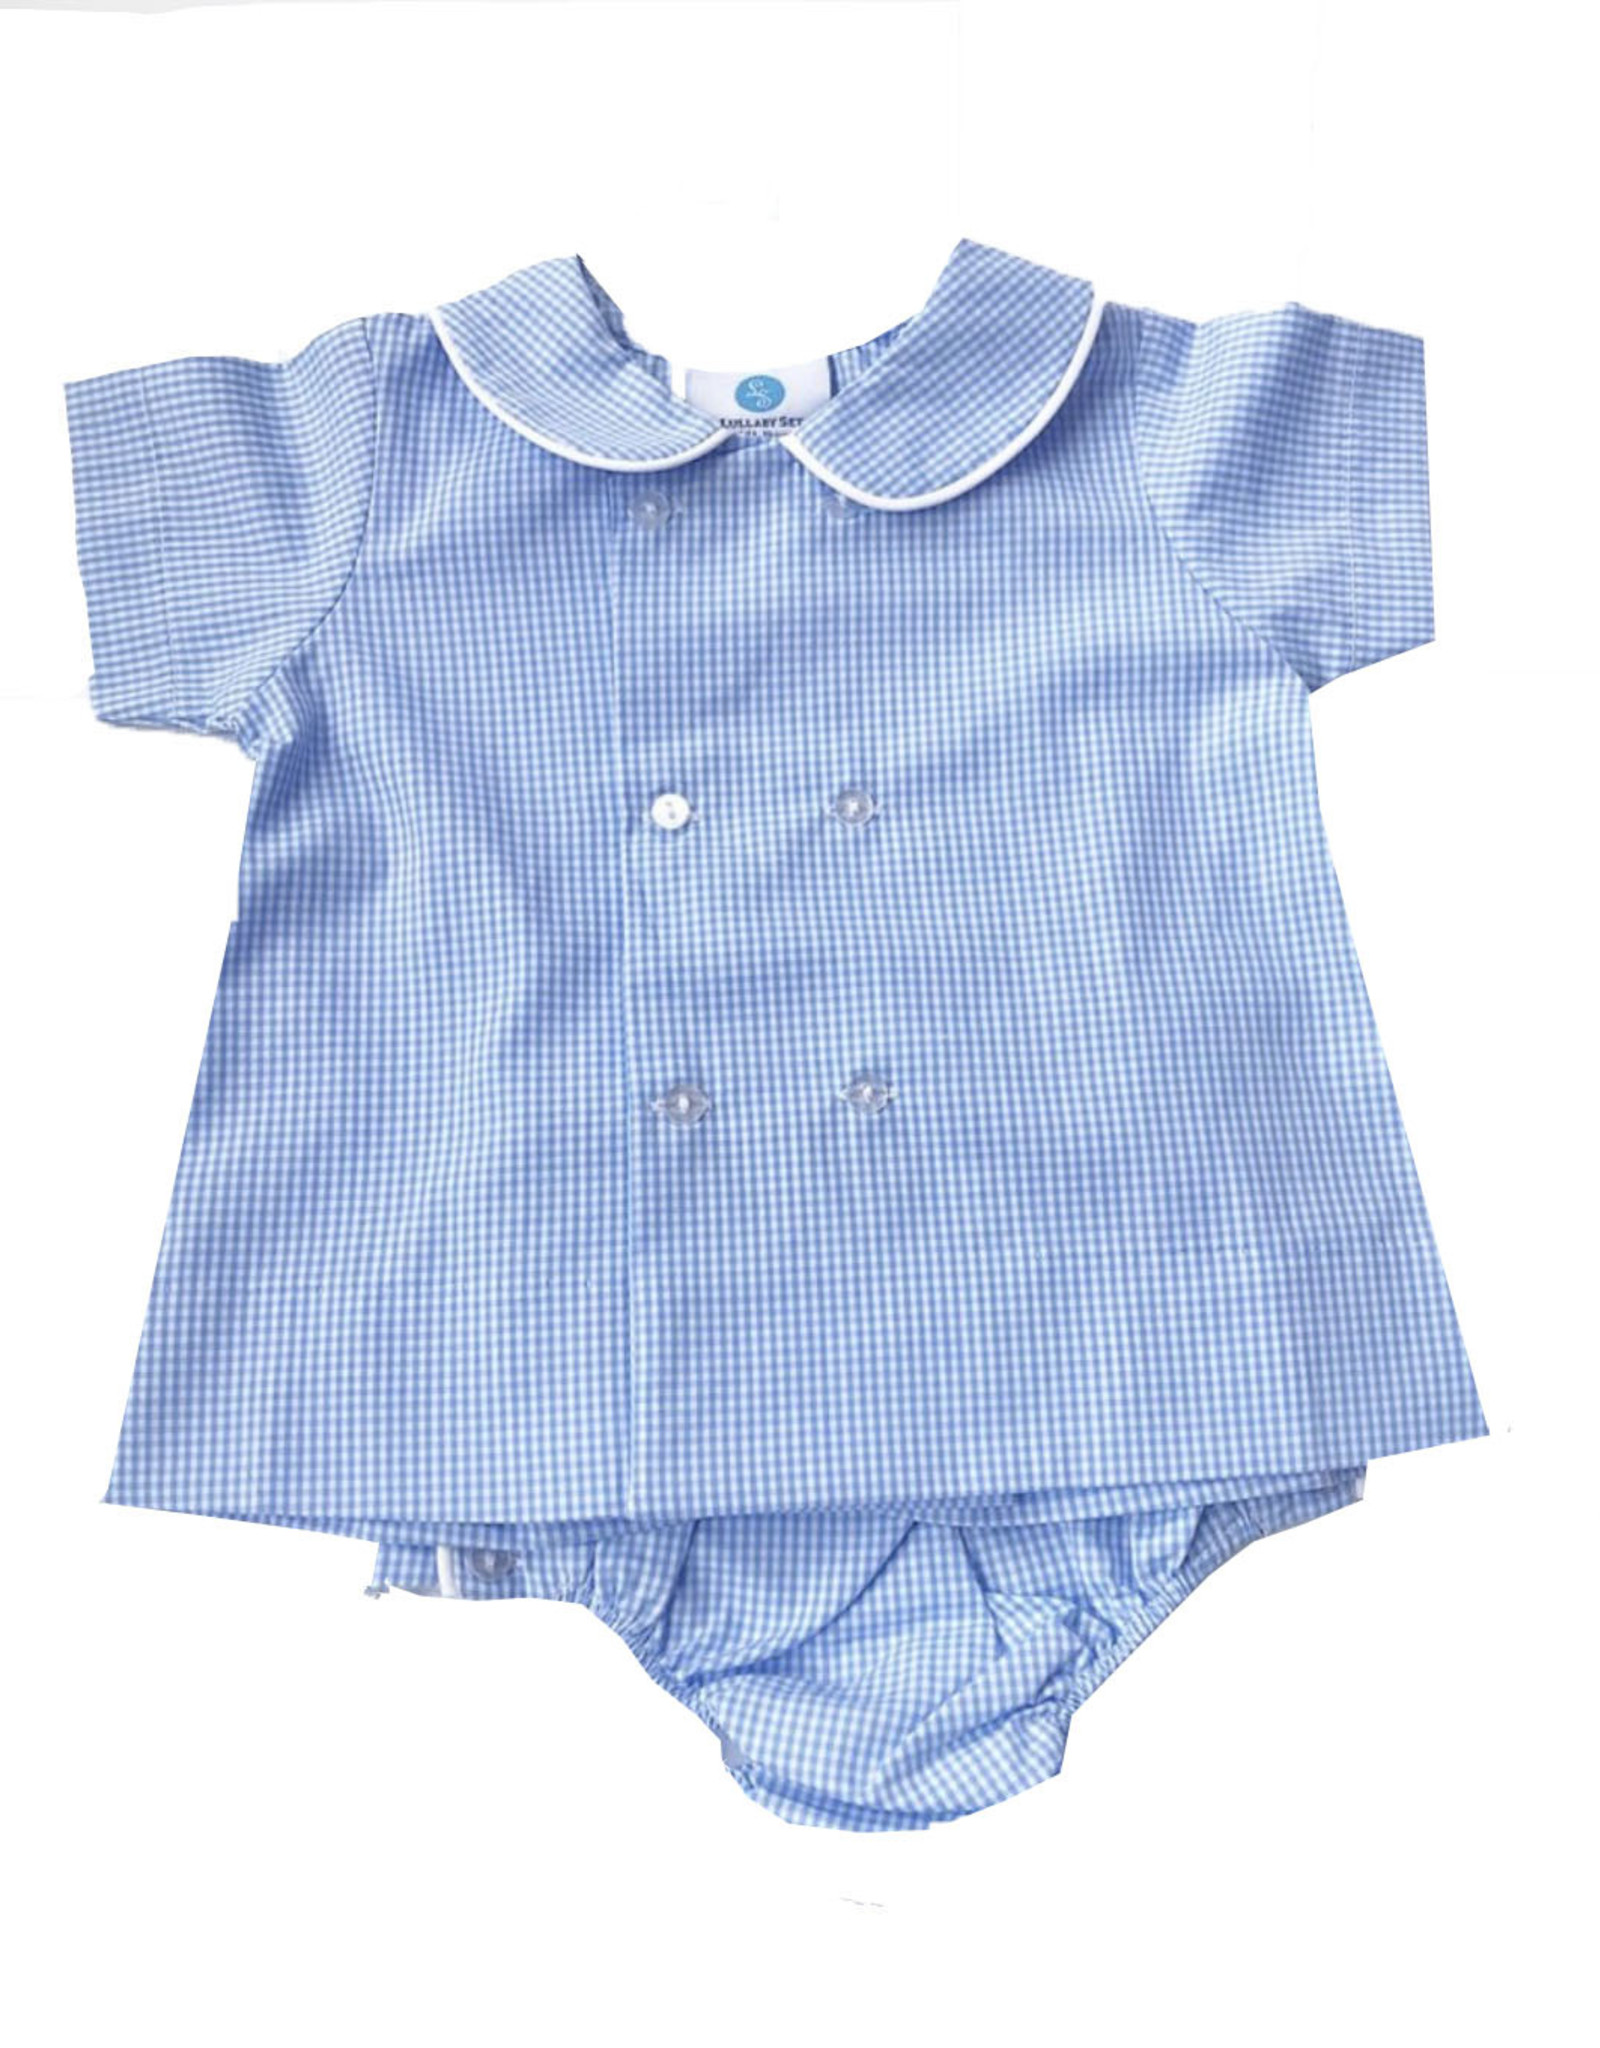 LullabySet Blue Arlington Apron Set